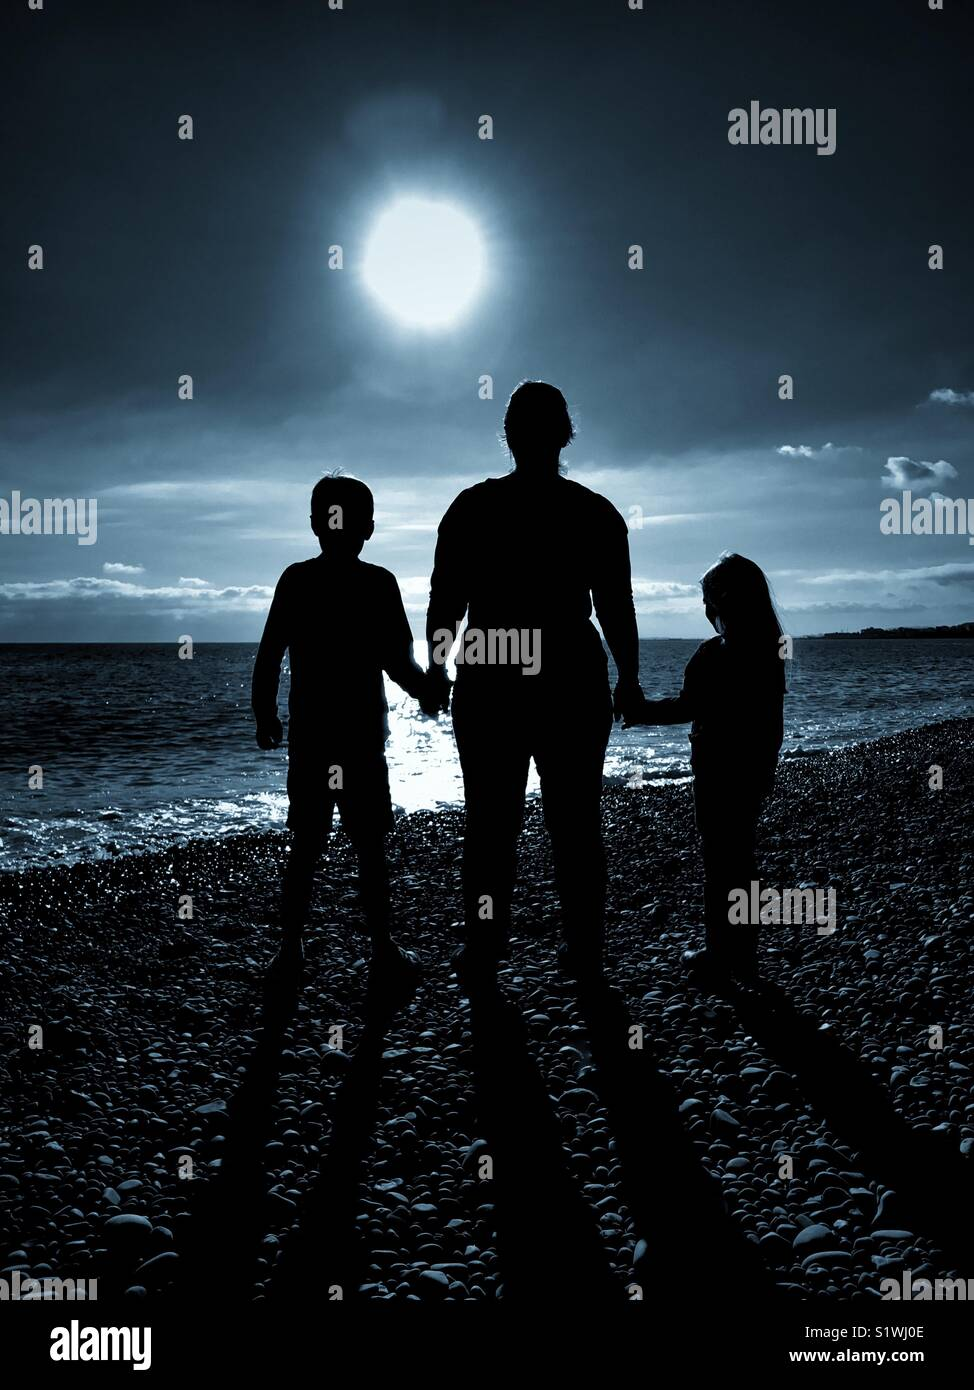 The silhouettes of 3 people - a Mother holds the hands of her 2 children as they all look forward towards a bright - Stock Image